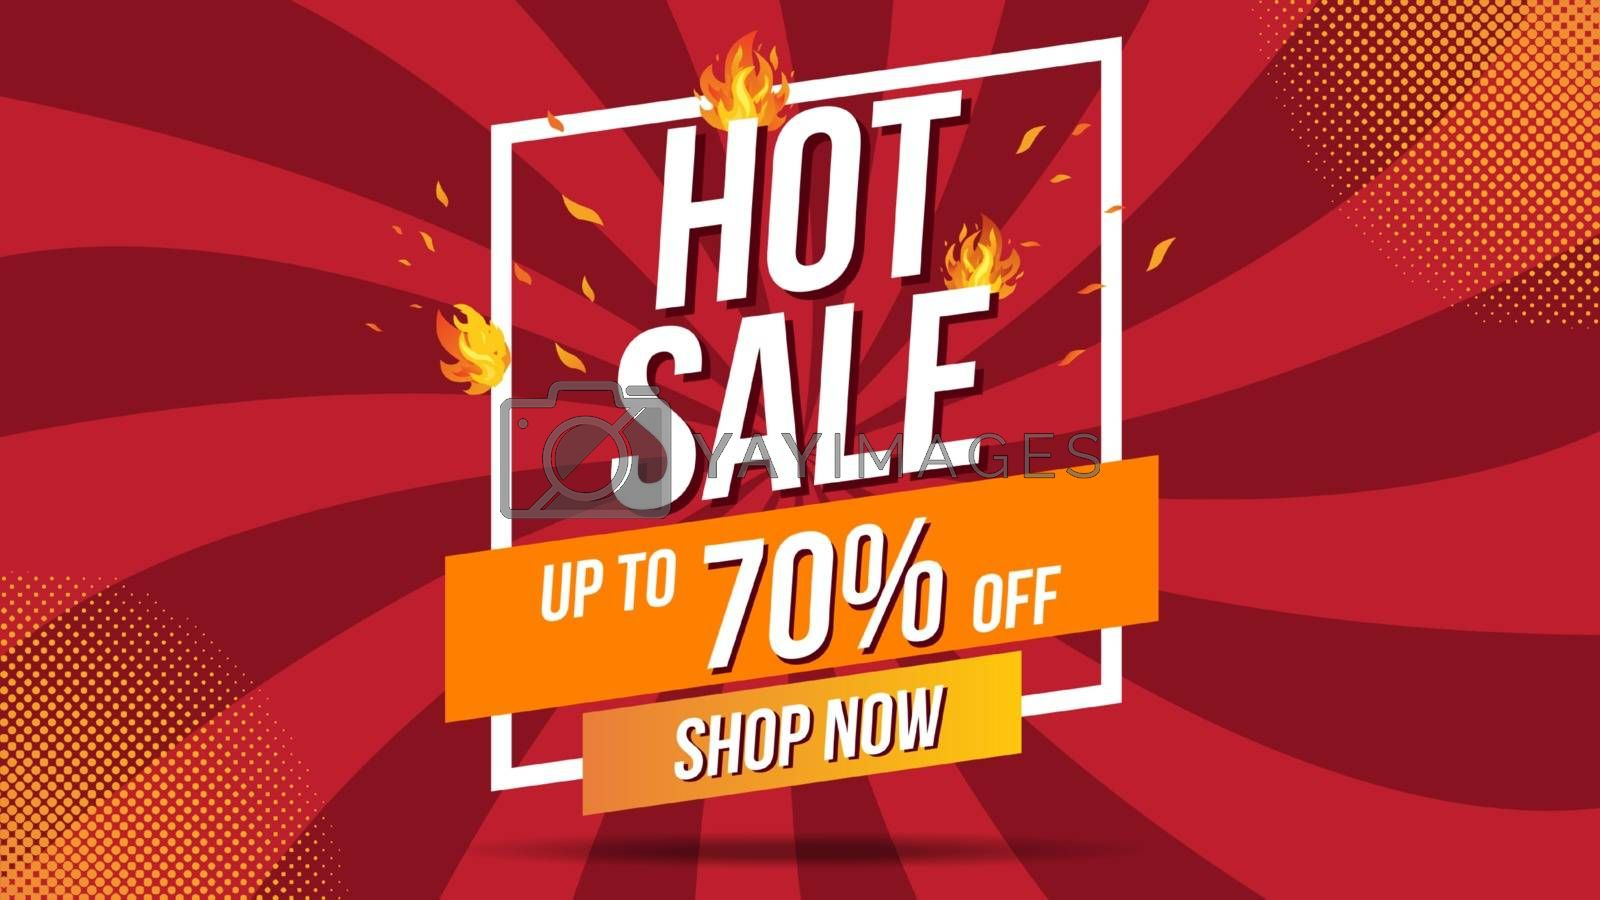 Hot Sale Fire Burn template banner concept design, Big sale special offer.End of season special offer banner shop now.Can be used for poster ,flyer and banner.